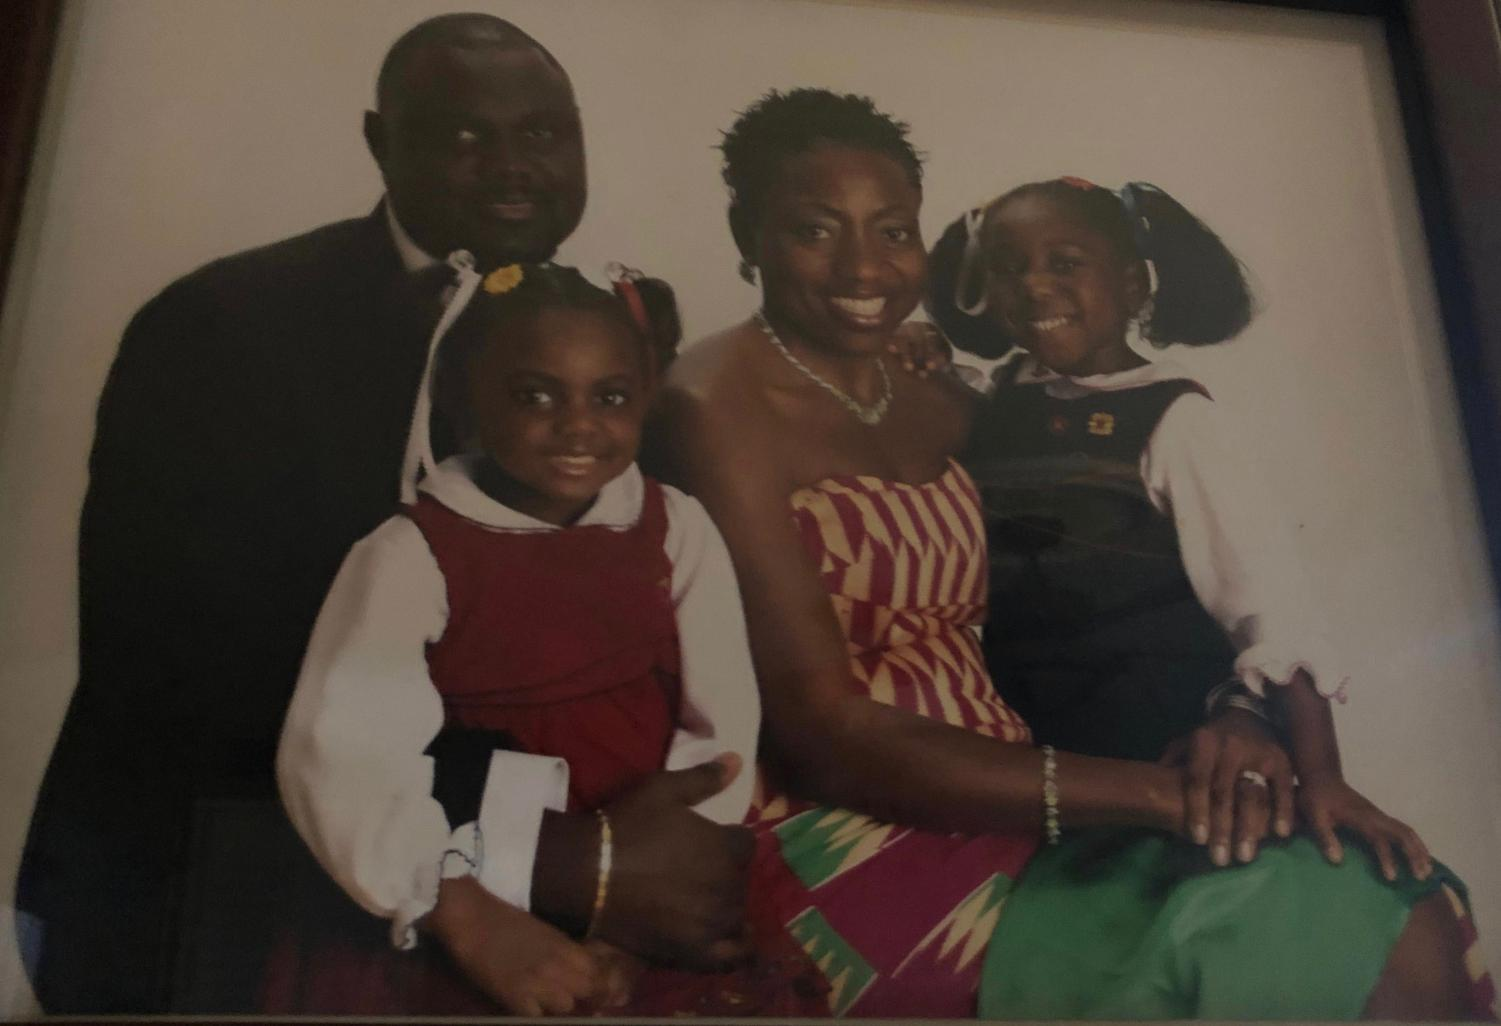 Maame Serwah Anobah-Manteaw and her family